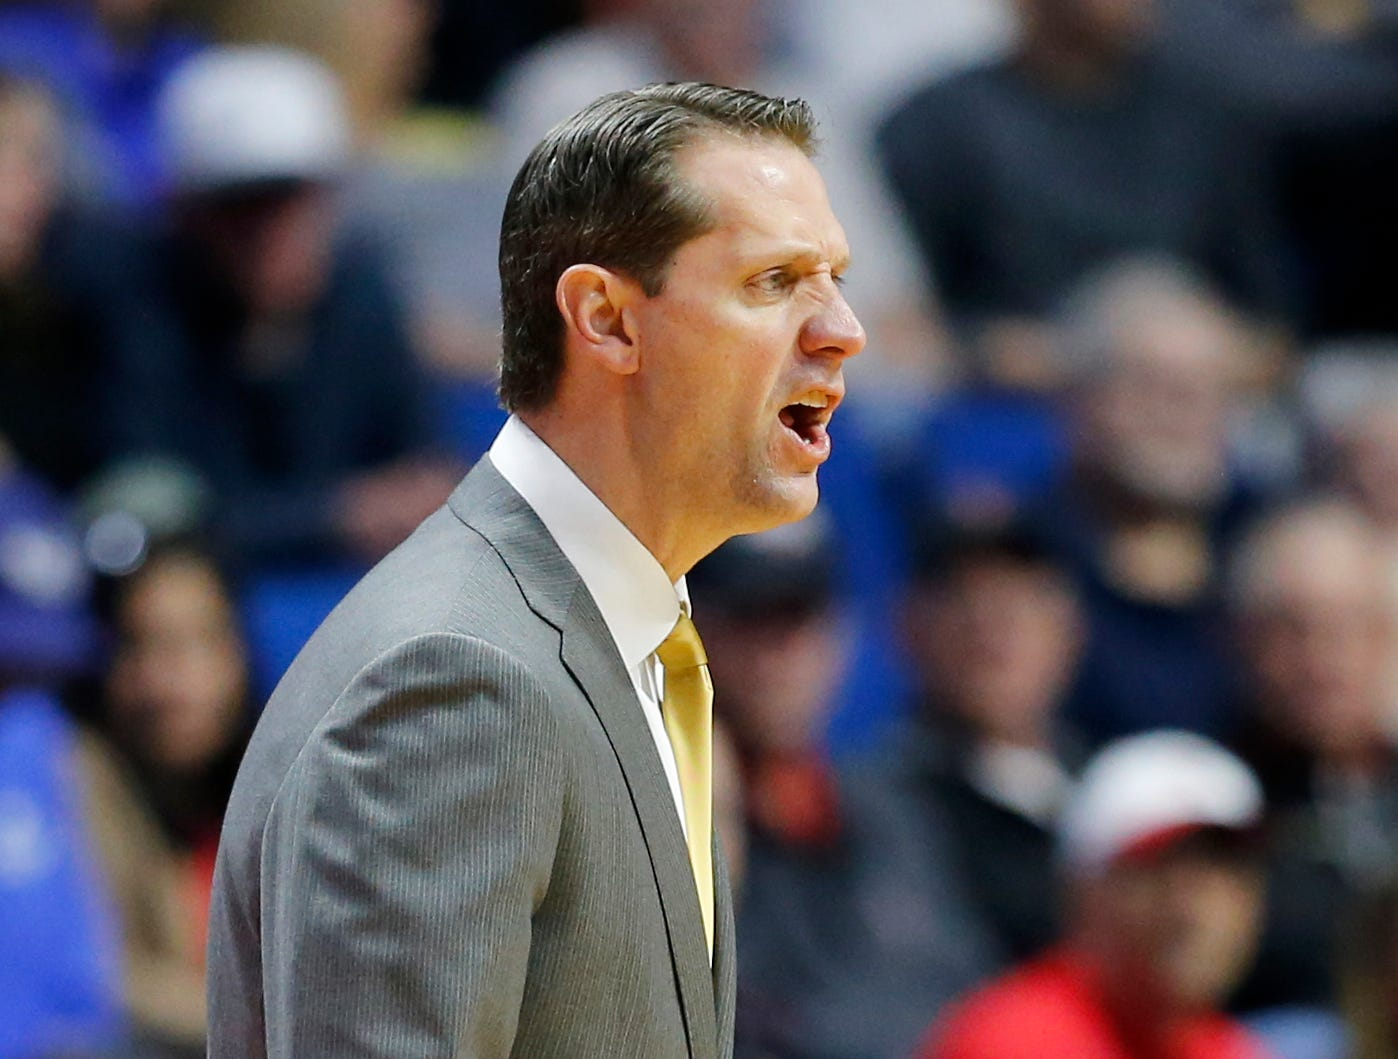 Northern Kentucky Norse head coach John Brannen shouts to his defense in the first half of the NCAA Tournament First Round game between the 14-seeded Northern Kentucky Norse and the 3-seeded Texas Tech Red Raiders the BOK Center in downtown Tulsa on Friday, March 22, 2019. Texas Tech led 30-26 at halftime.